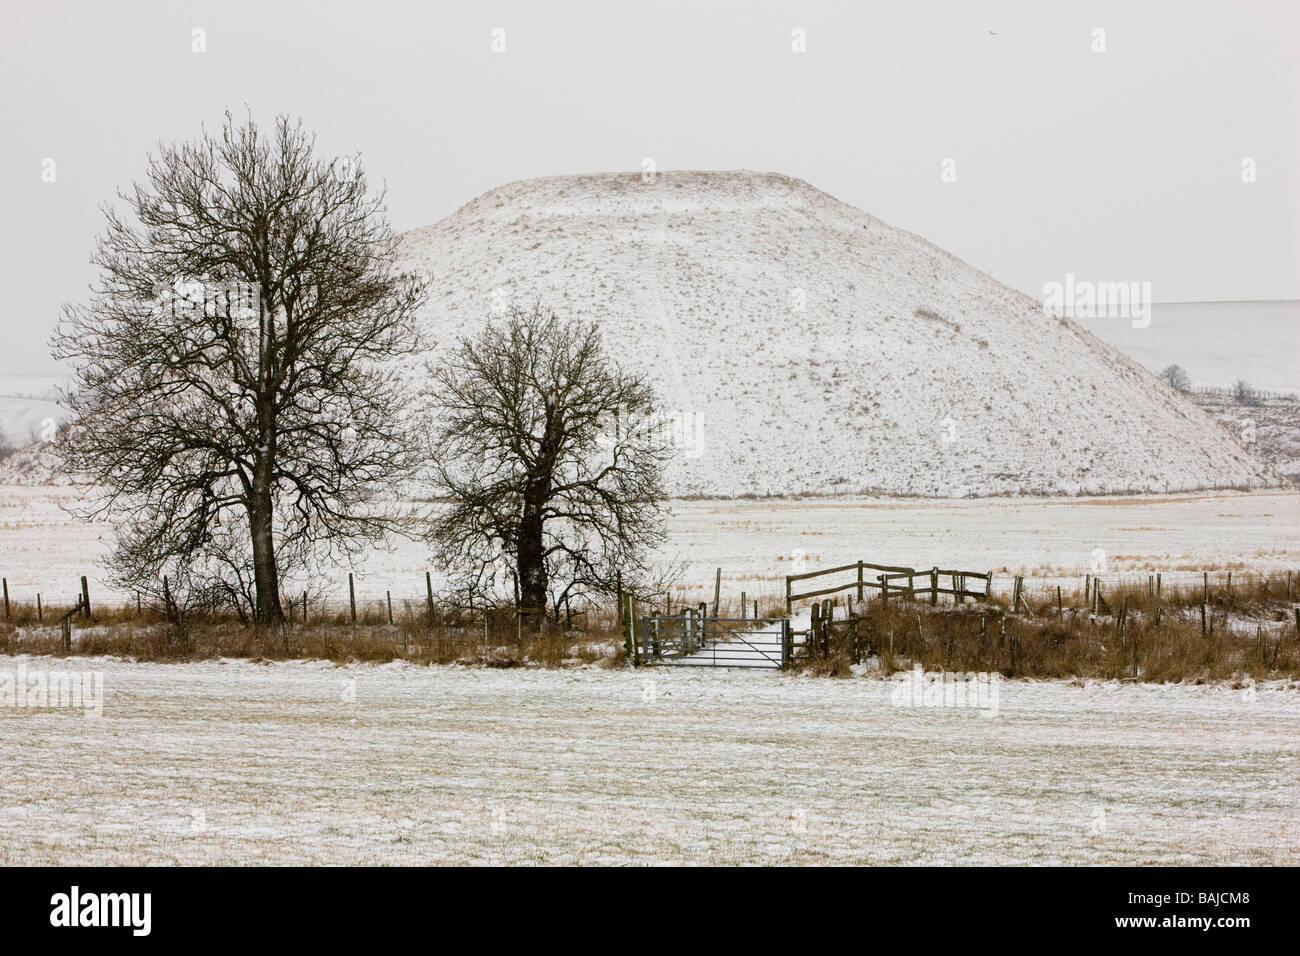 Silbury Hill, a mysterious and ancient neolithic monument - Stock Image